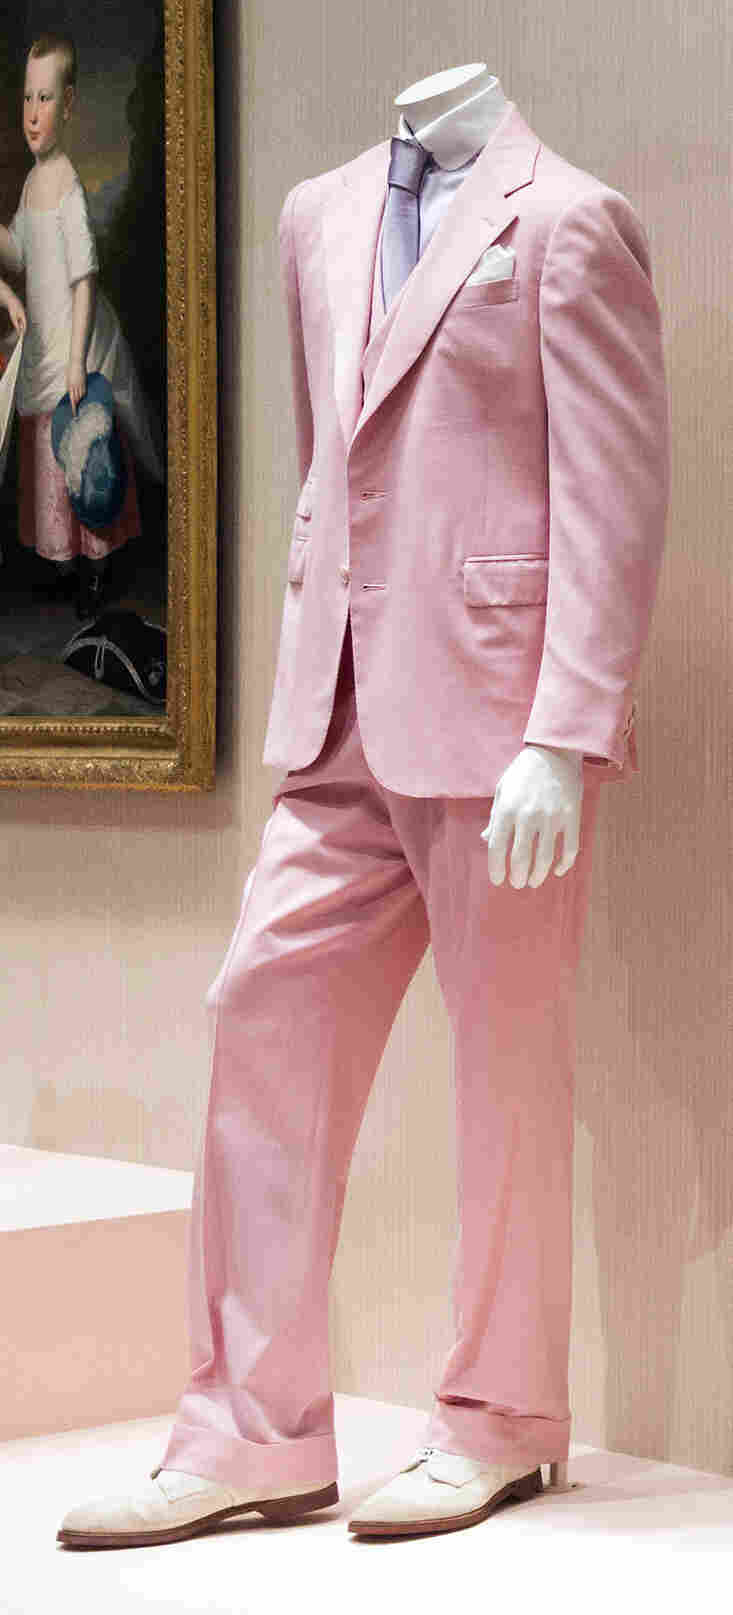 A copy of the Ralph Lauren suit made for Robert Redford in the 1974 film version of F. Scott Fitzgerald's The Great Gatsby.